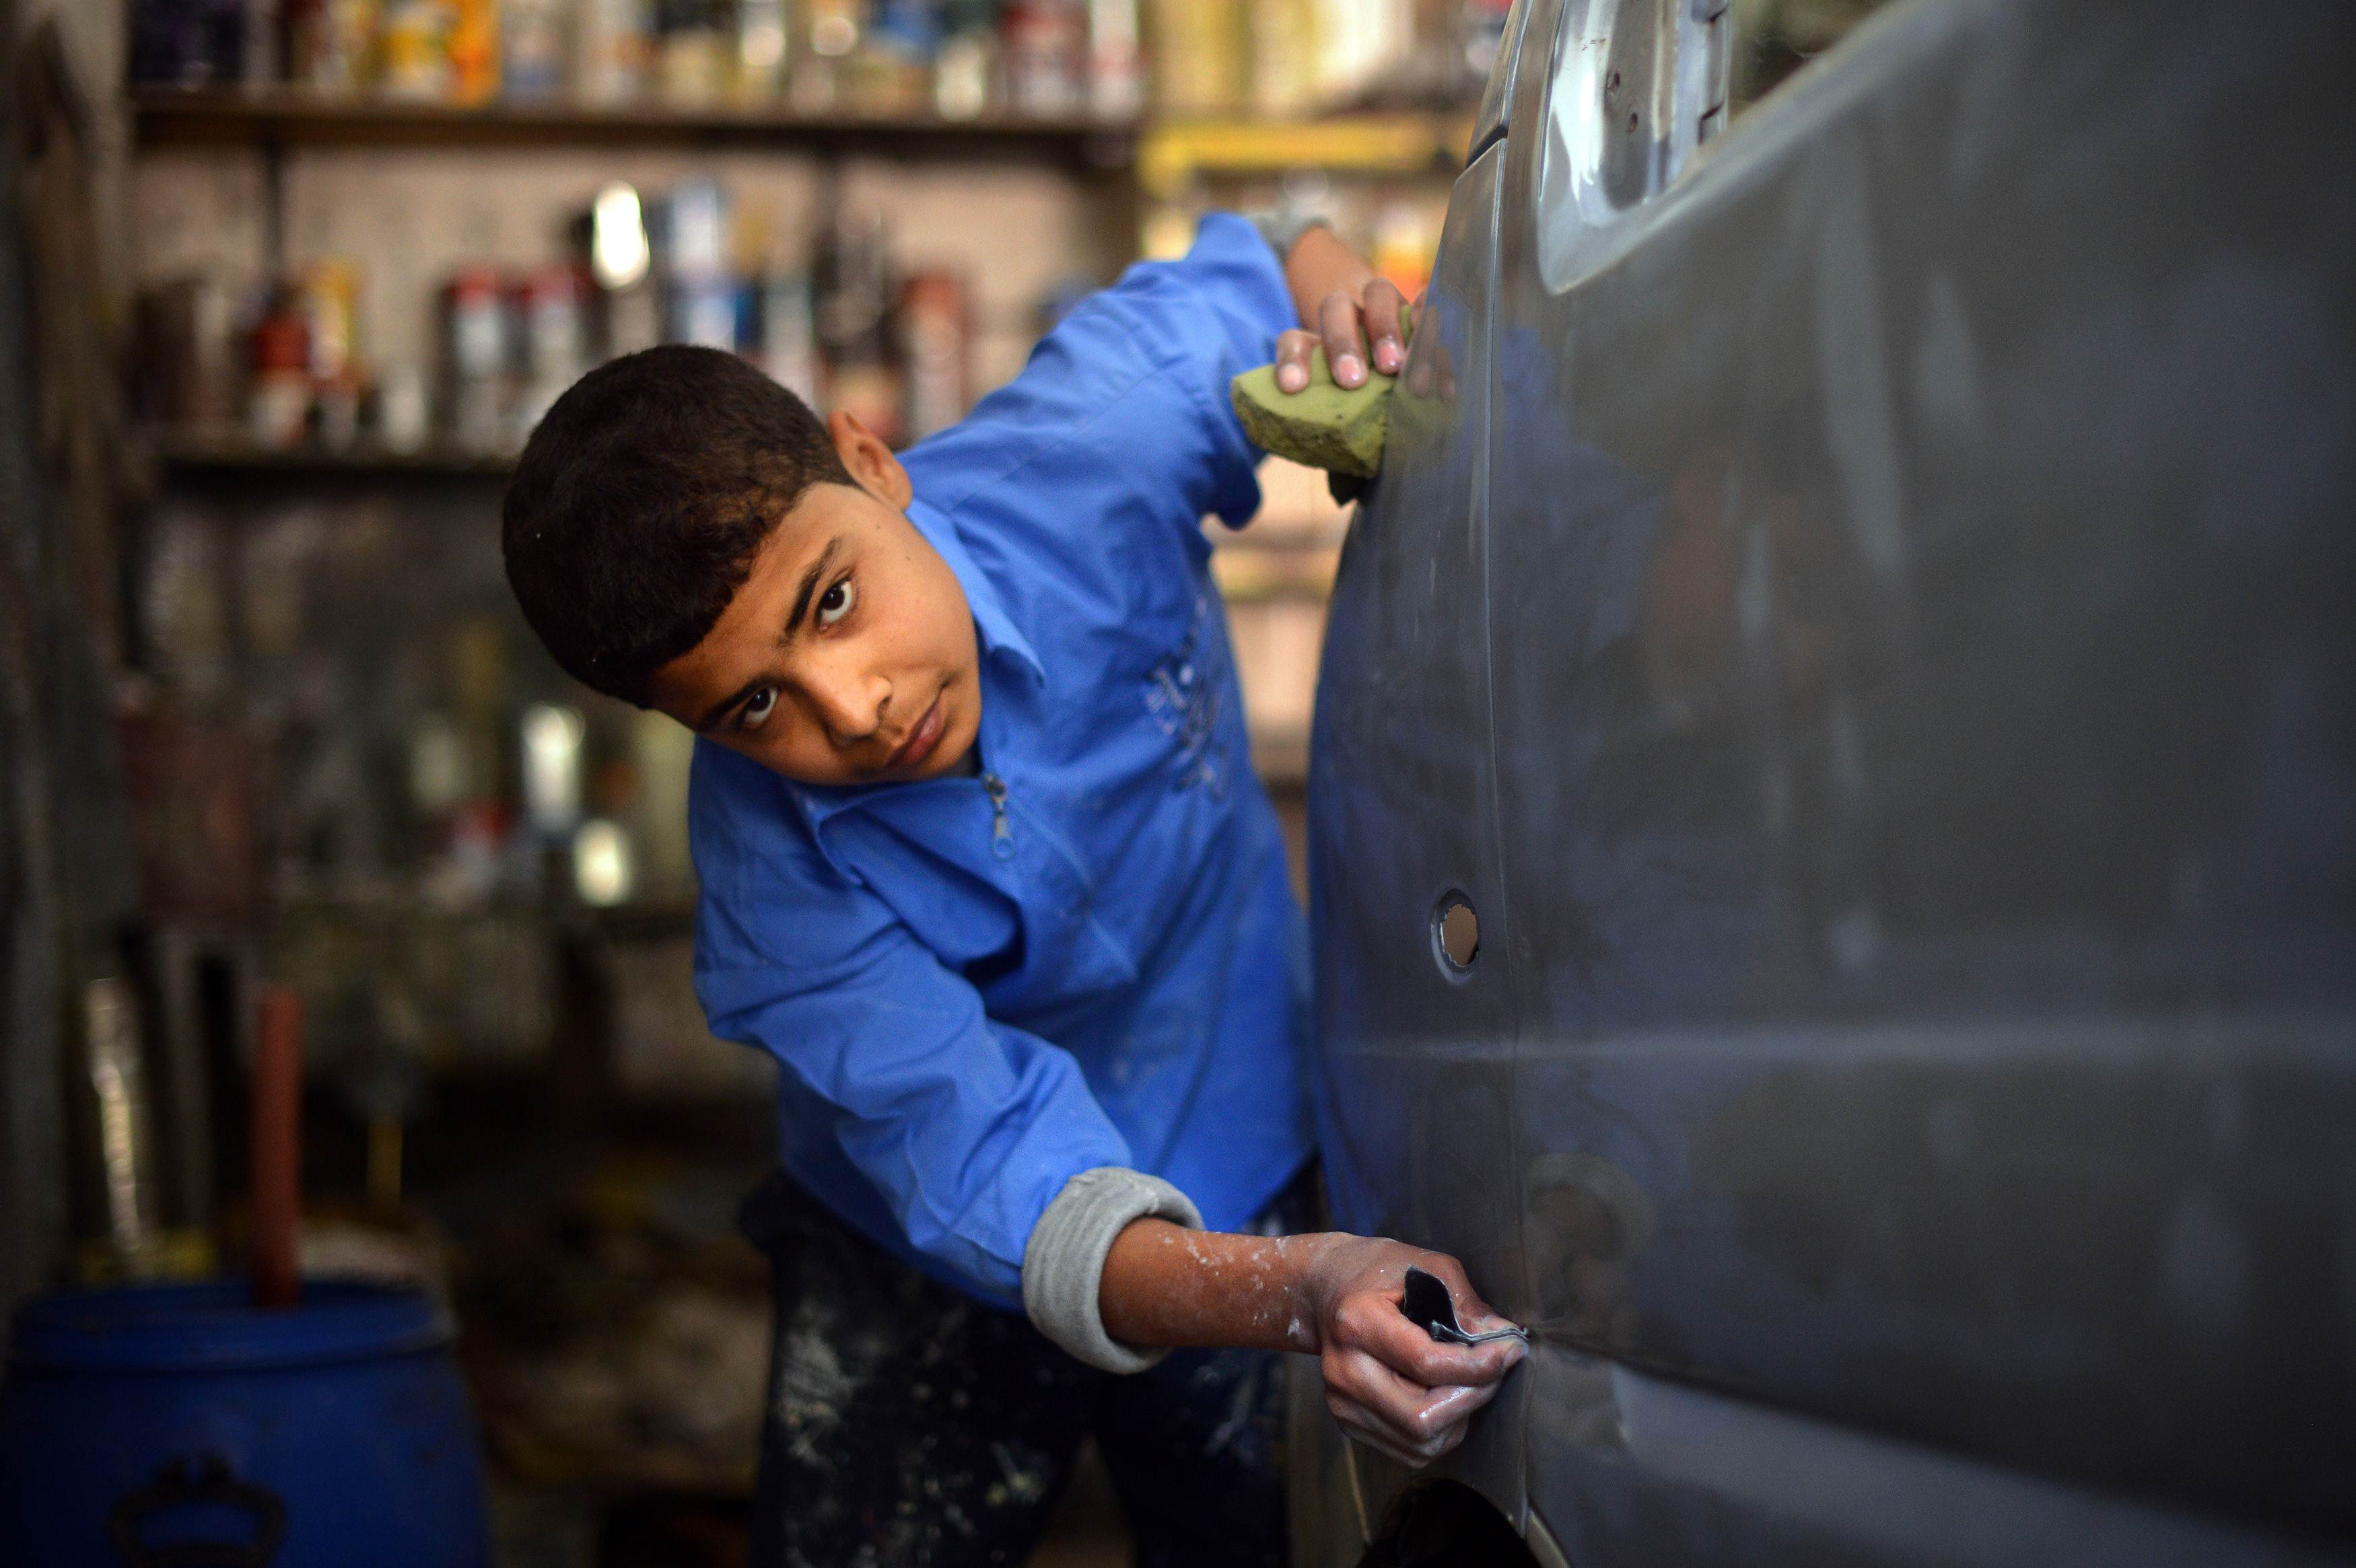 A Syrian boy works at a garage in the northern Syrian city of Aleppo on April 6, 2013. Conflict in neighbourhoods of Aleppo, which has been shaken by war for nine months, has put an end to childhood for most youths and it is not uncommon to see young boys working in the streets.